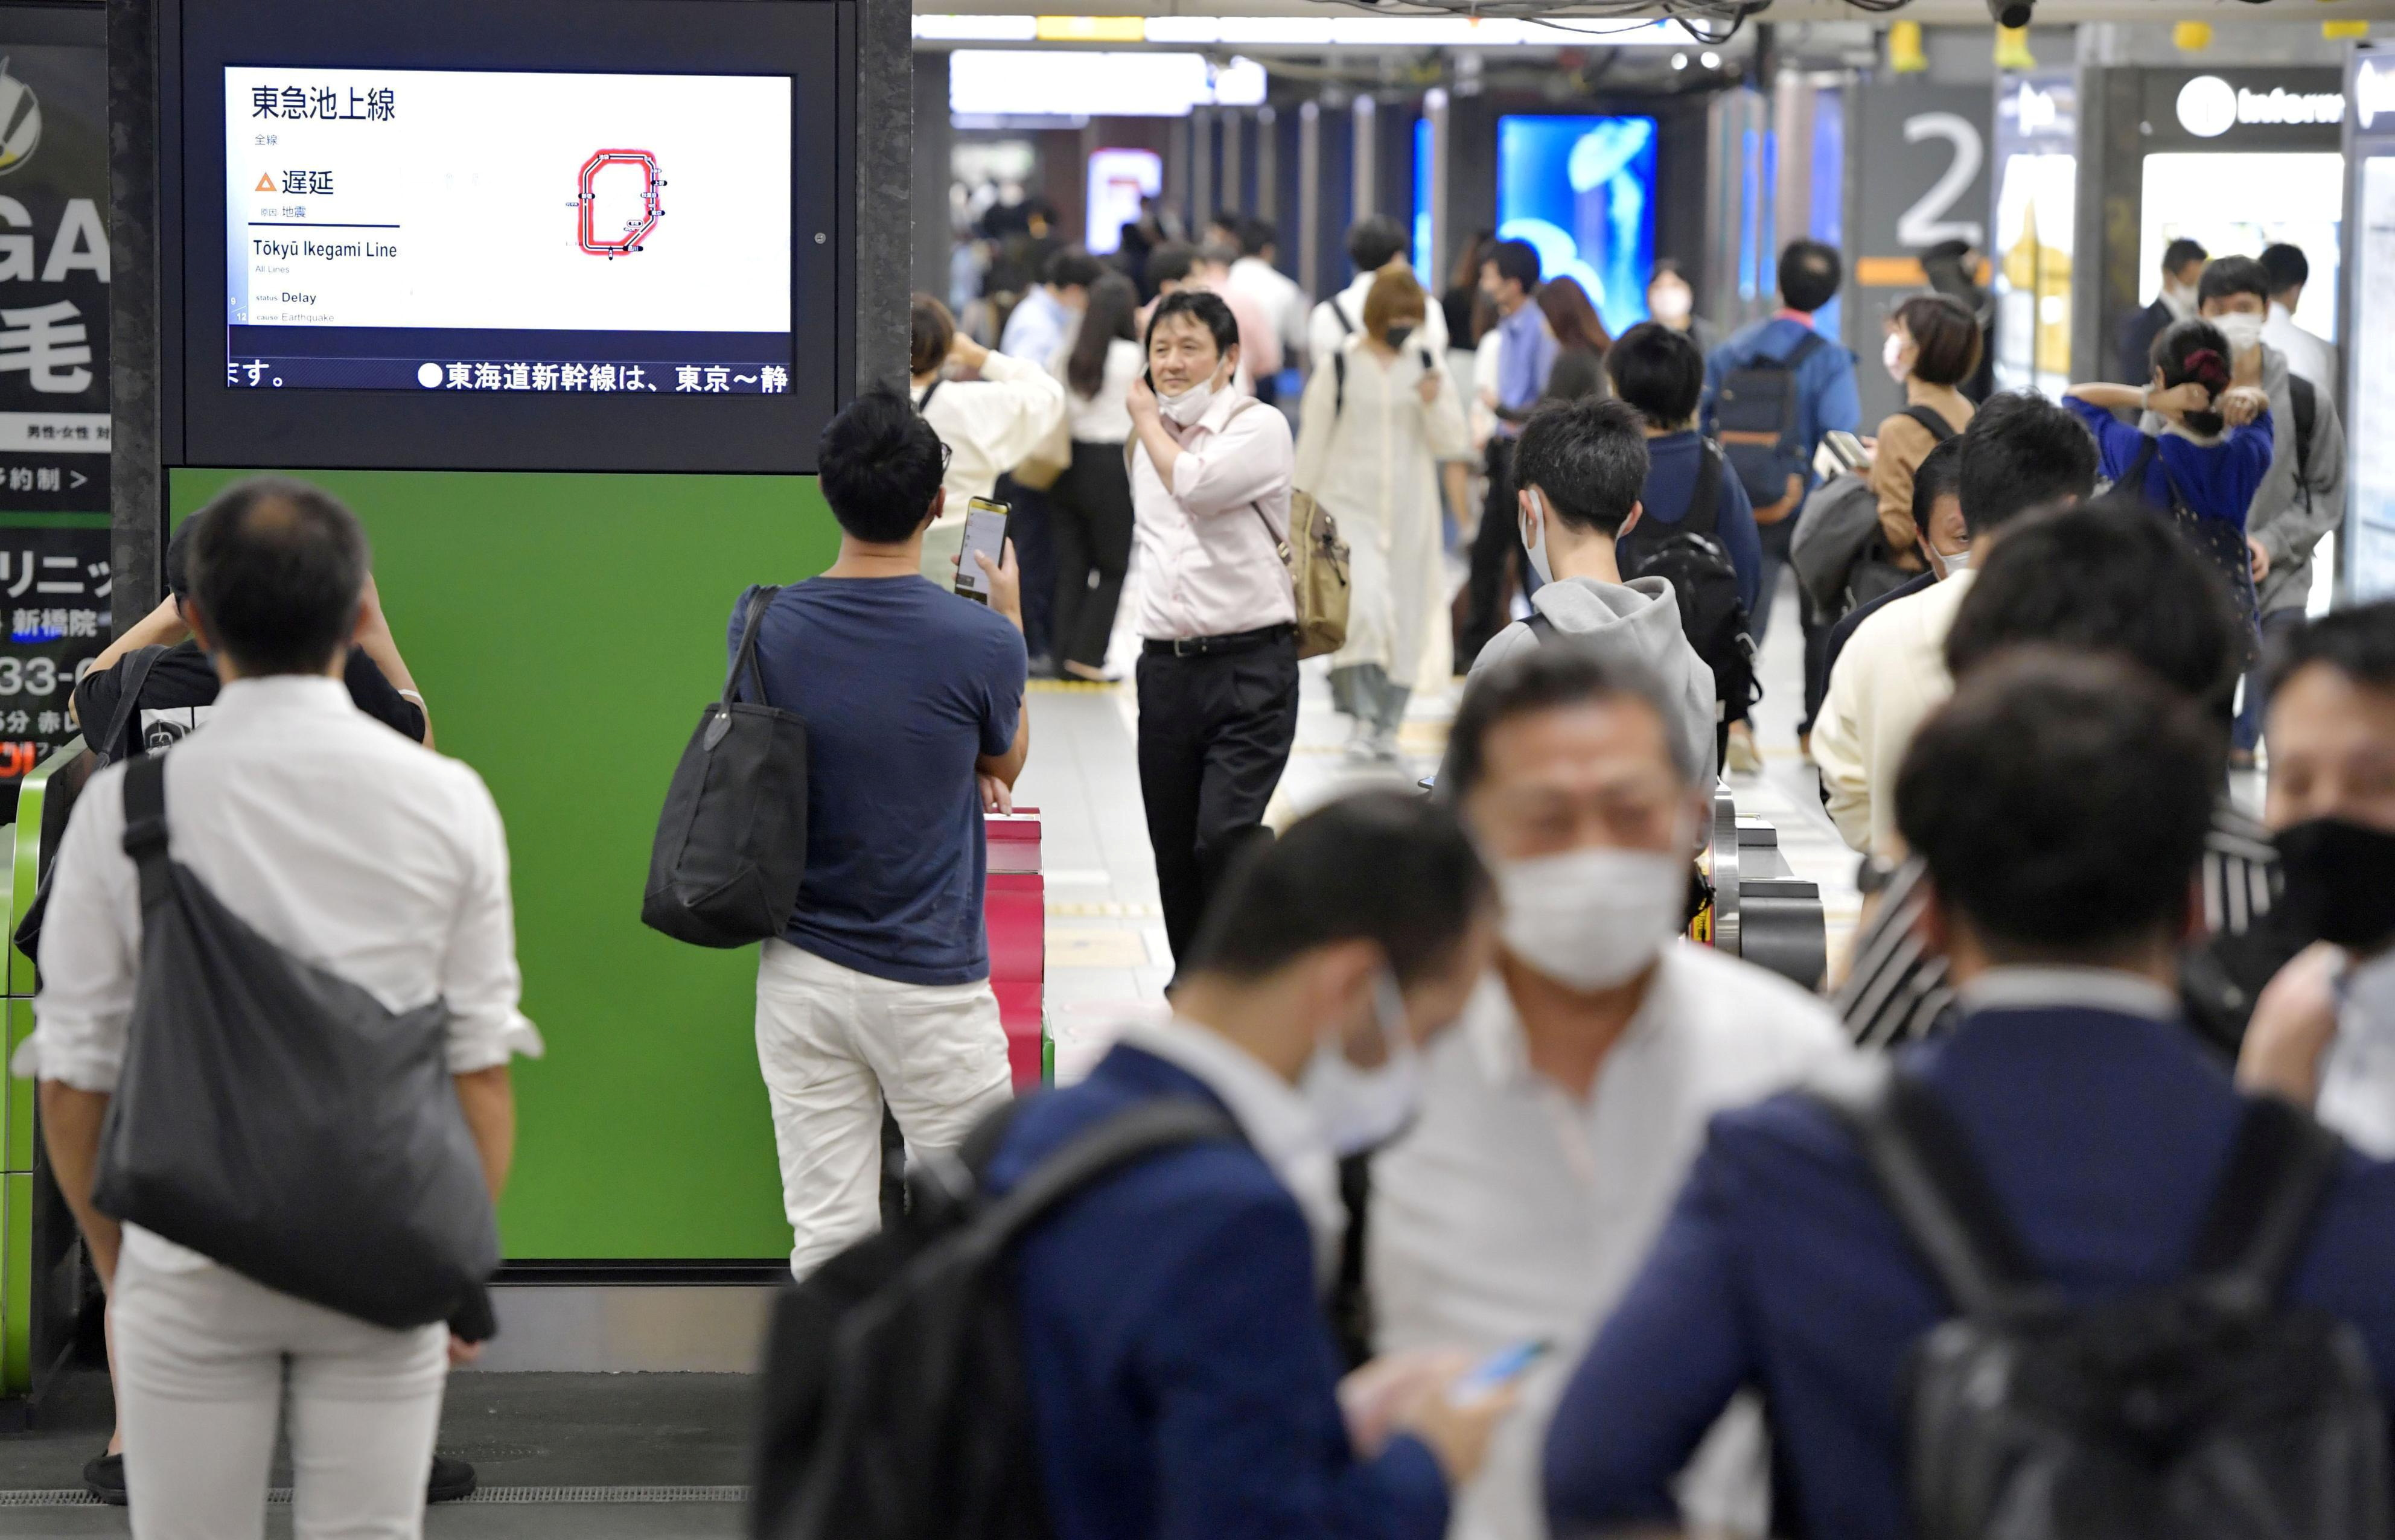 The entrance of JR Shimbashi station is crowded with passengers as the train services are suspended following an earthquake in Tokyo, Japan in this photo taken by Kyodo October 7, 2021. Mandatory credit Kyodo/via REUTERS